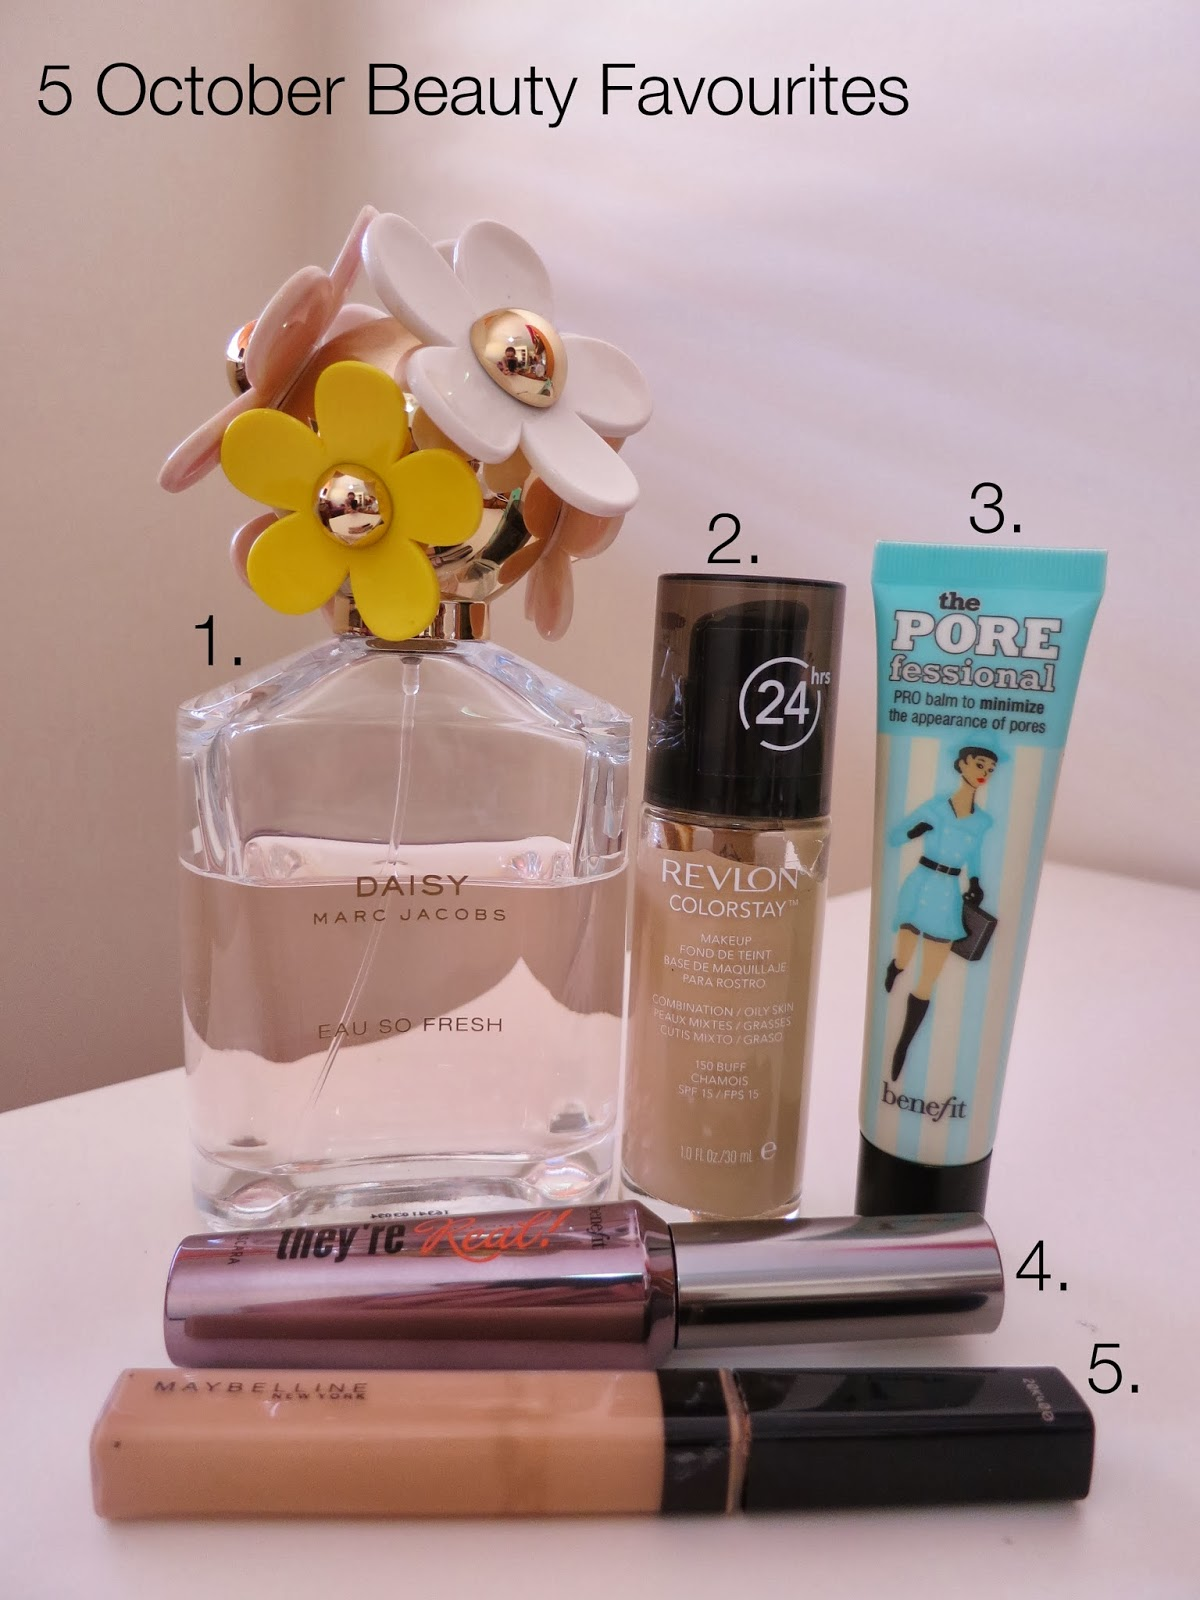 5 october beauty favourites 2013, revlon colorstay, benefit porefessional, benefit they're real, maybelline fit me concealer, marc jacobs daisy